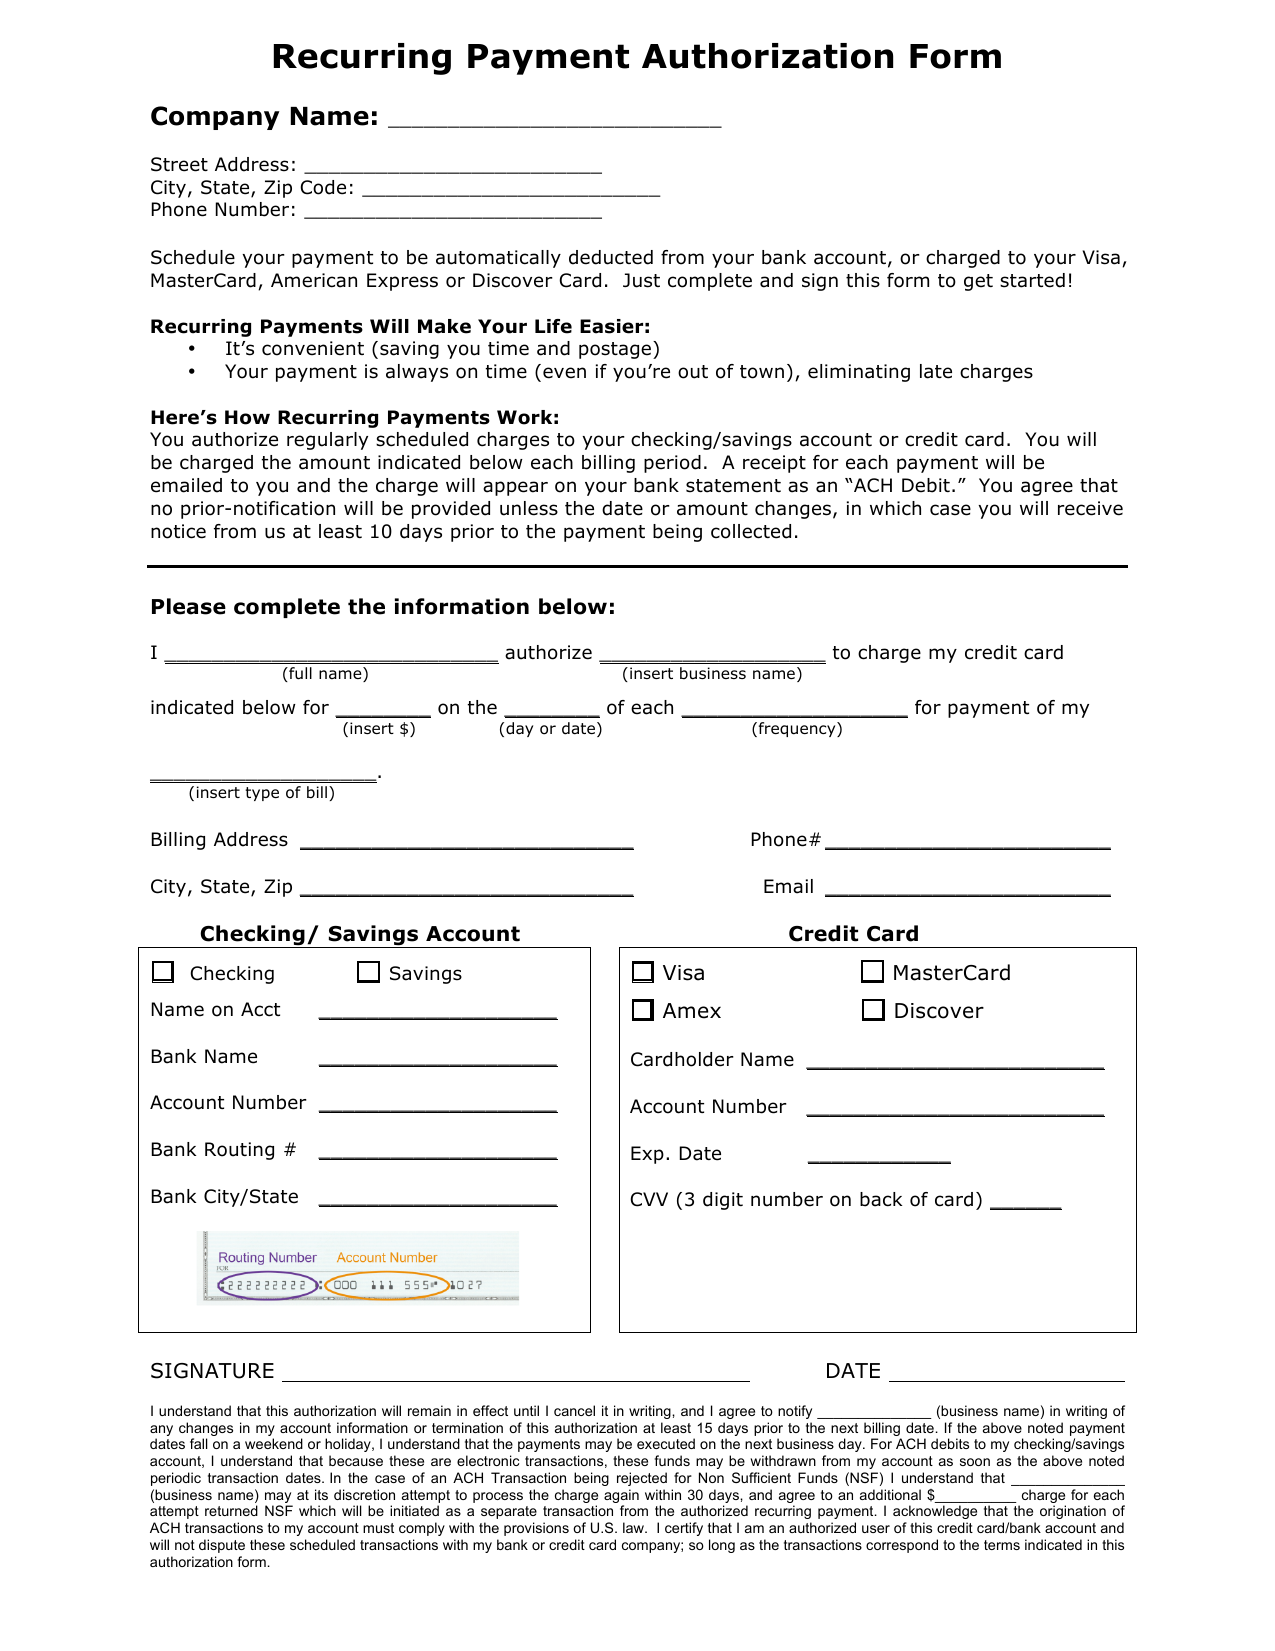 credit card processing form template credit card authorization form template credit card processing form template tk